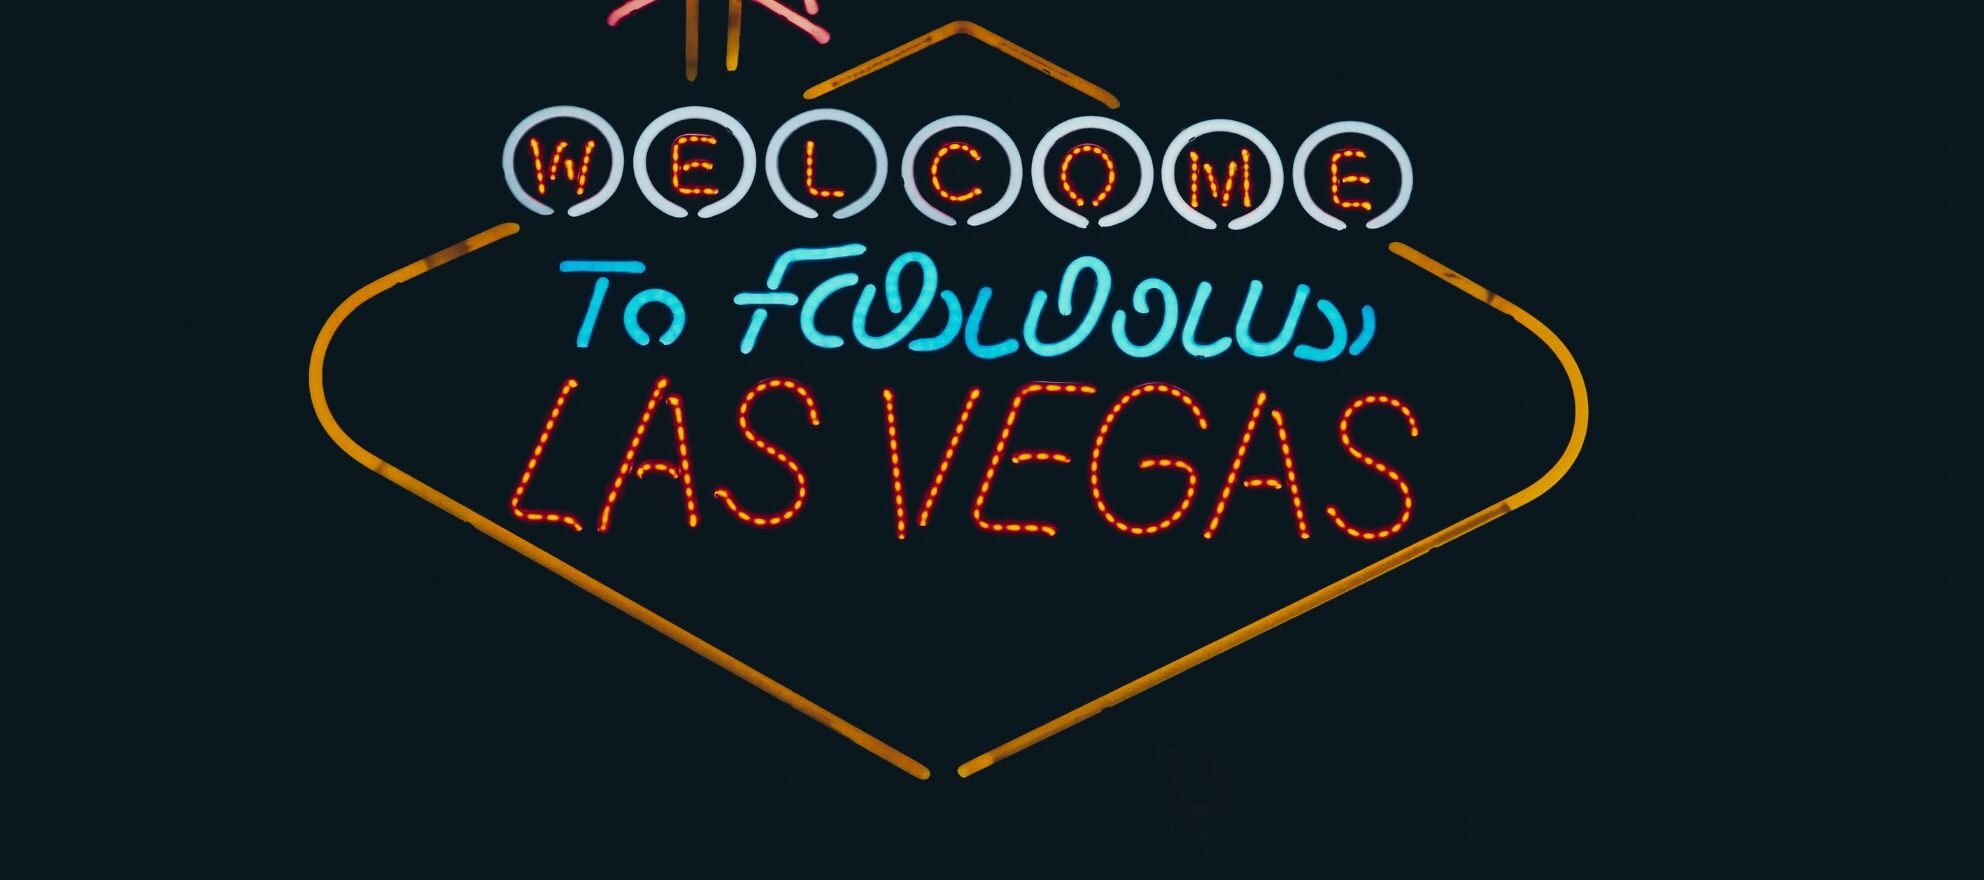 Inman Connect Las Vegas: 10 tips for first-time attendees